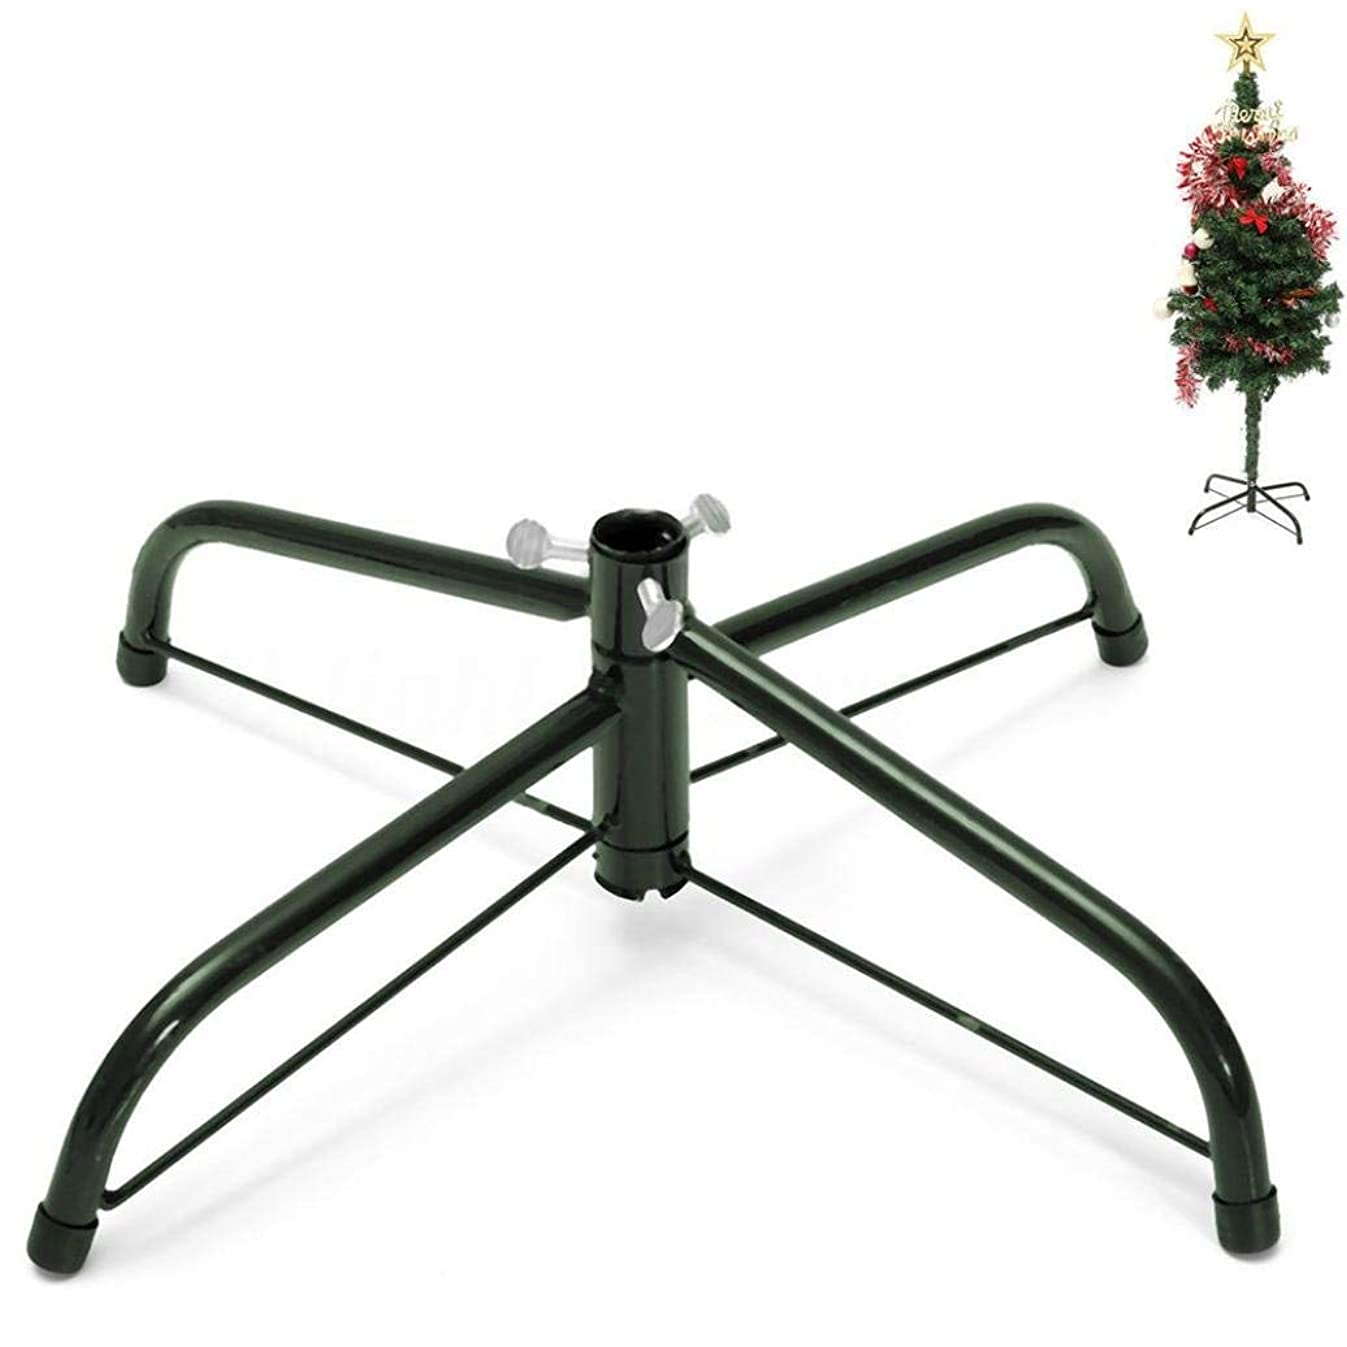 Maikerry Christmas Tree Stand for 3 to 5-Foot Trees Great Artificial Christmas Tree Stand (45cm)